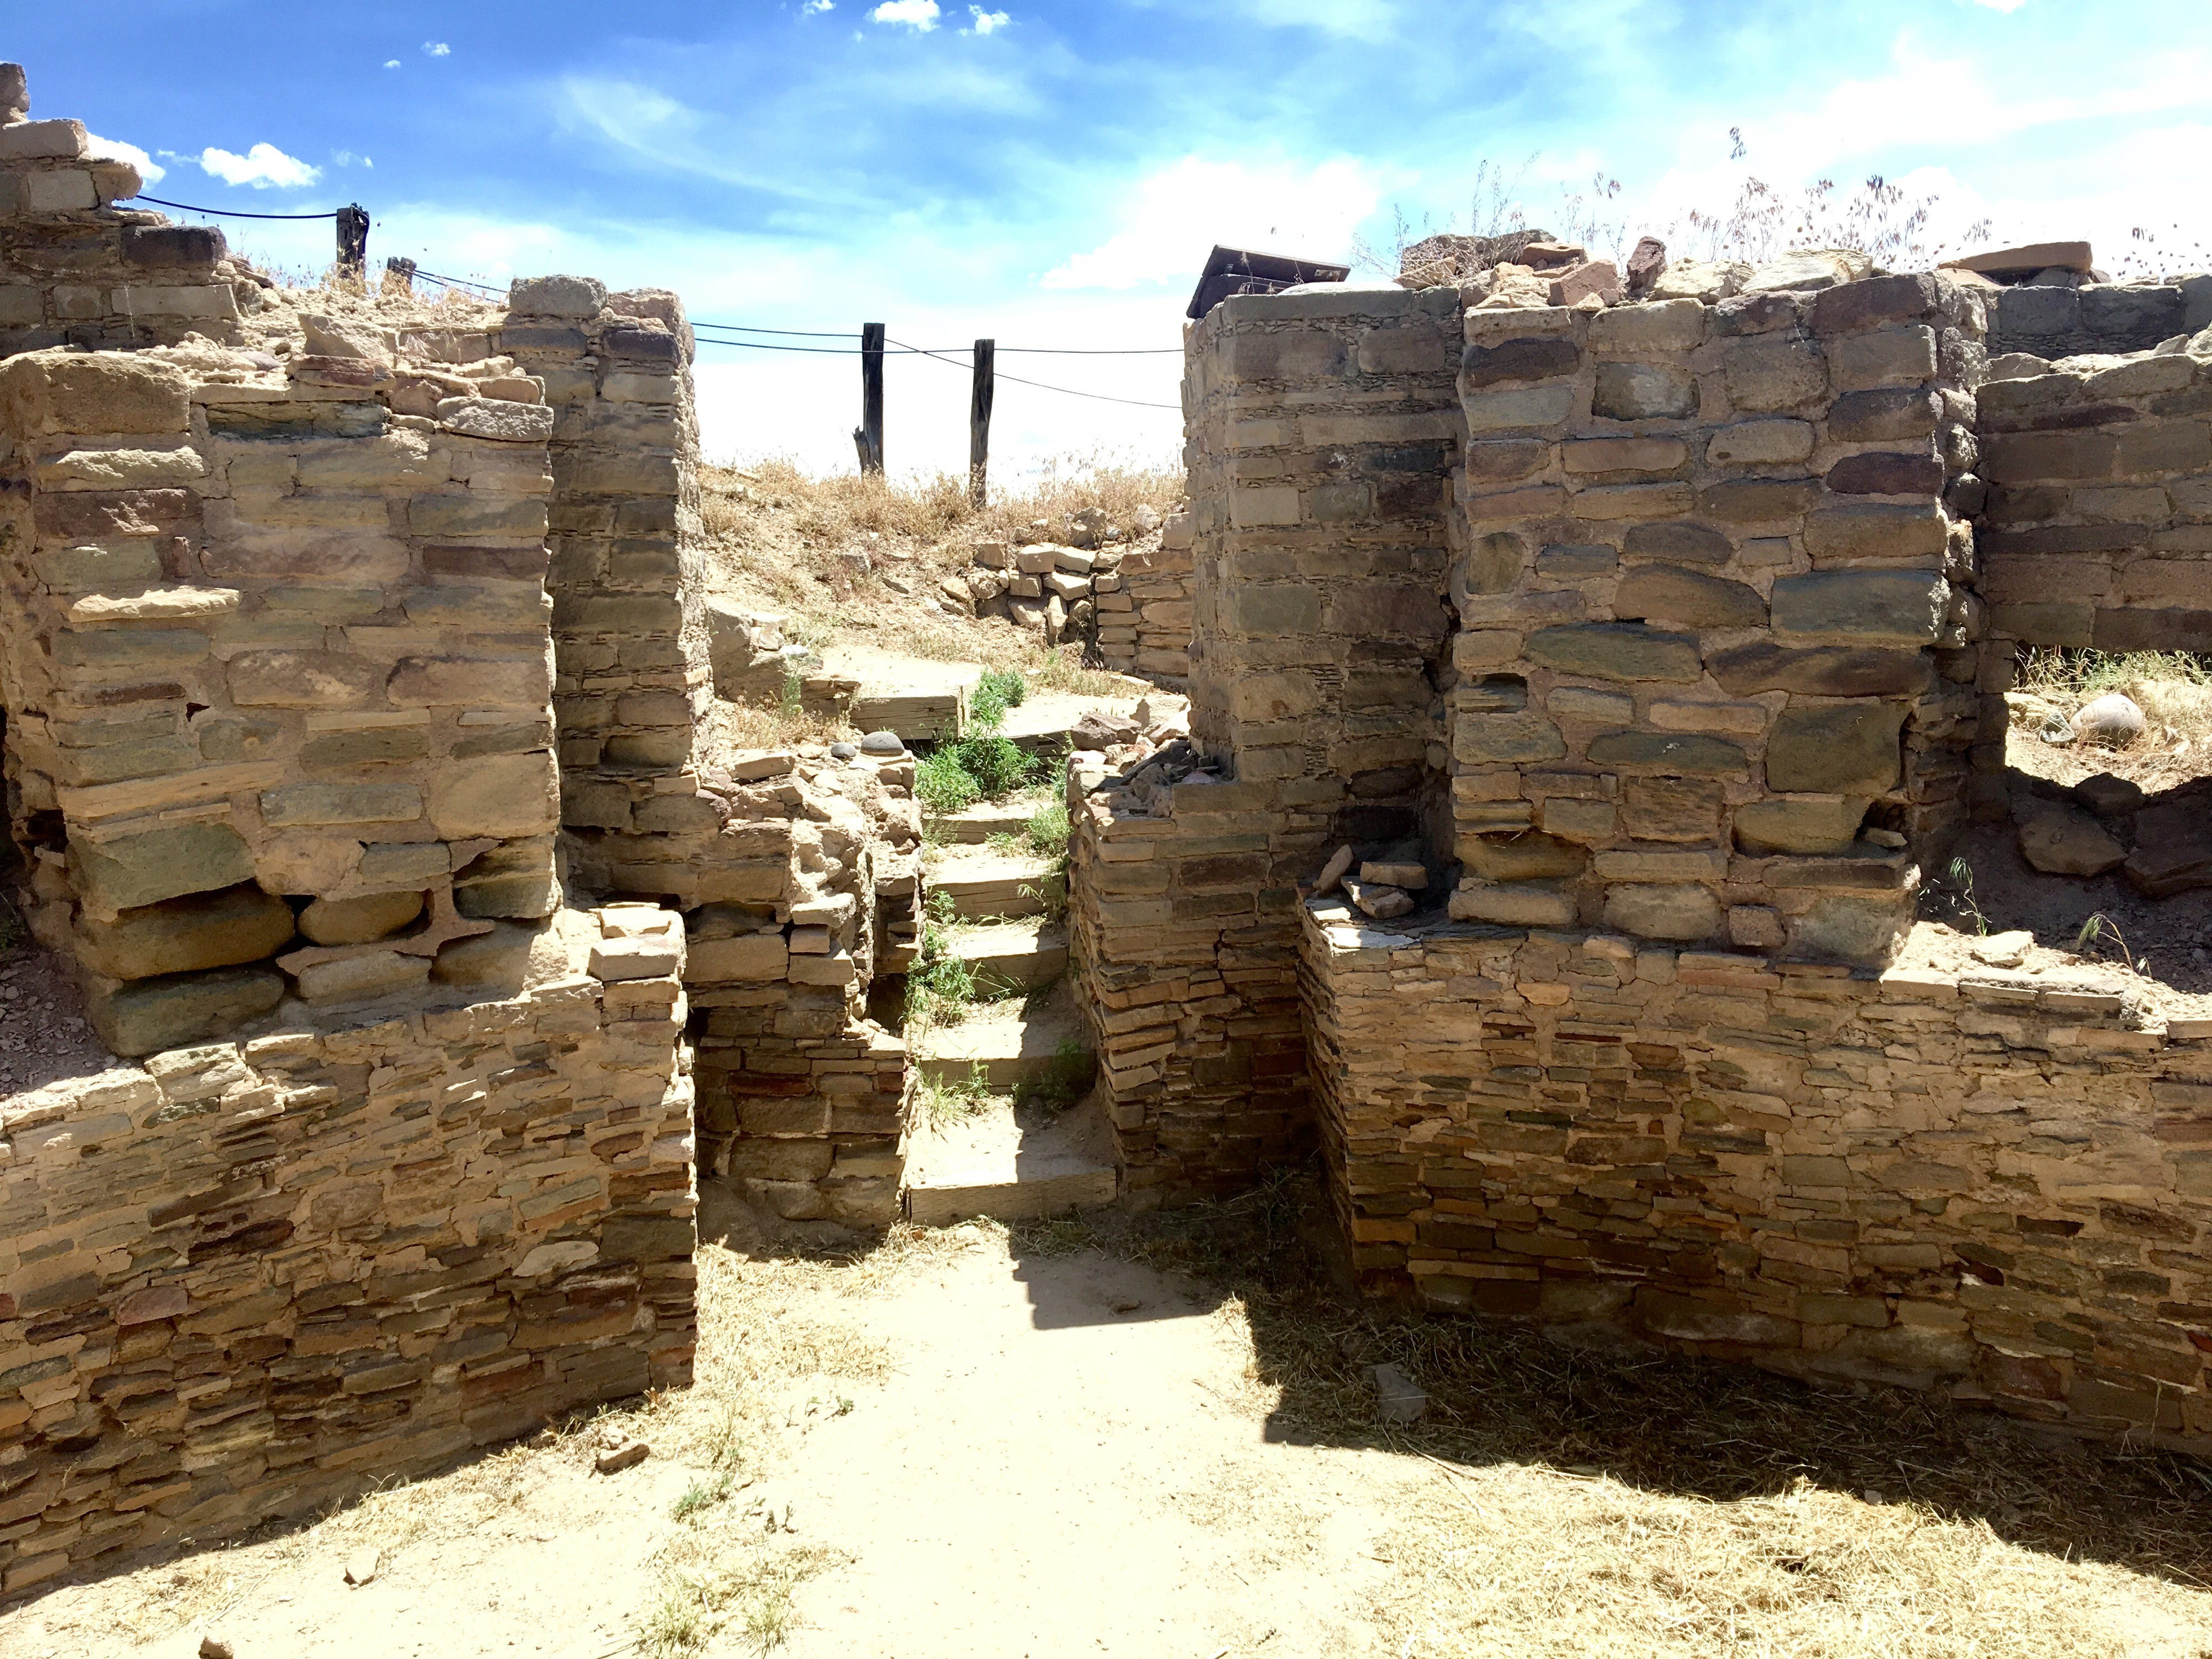 The Salmon Ruins in Bloomfield is among the most accessible pre-colonial Native American sites in New Mexico. The partially-excavated but unimproved site was built starting in 1088 and is an example of an Anasazi ancestral Pueblo. About 300 people lived there until 1288, when evidence indicates it was abandoned. The site contains a museum and the remains of the Salmon family homestead.